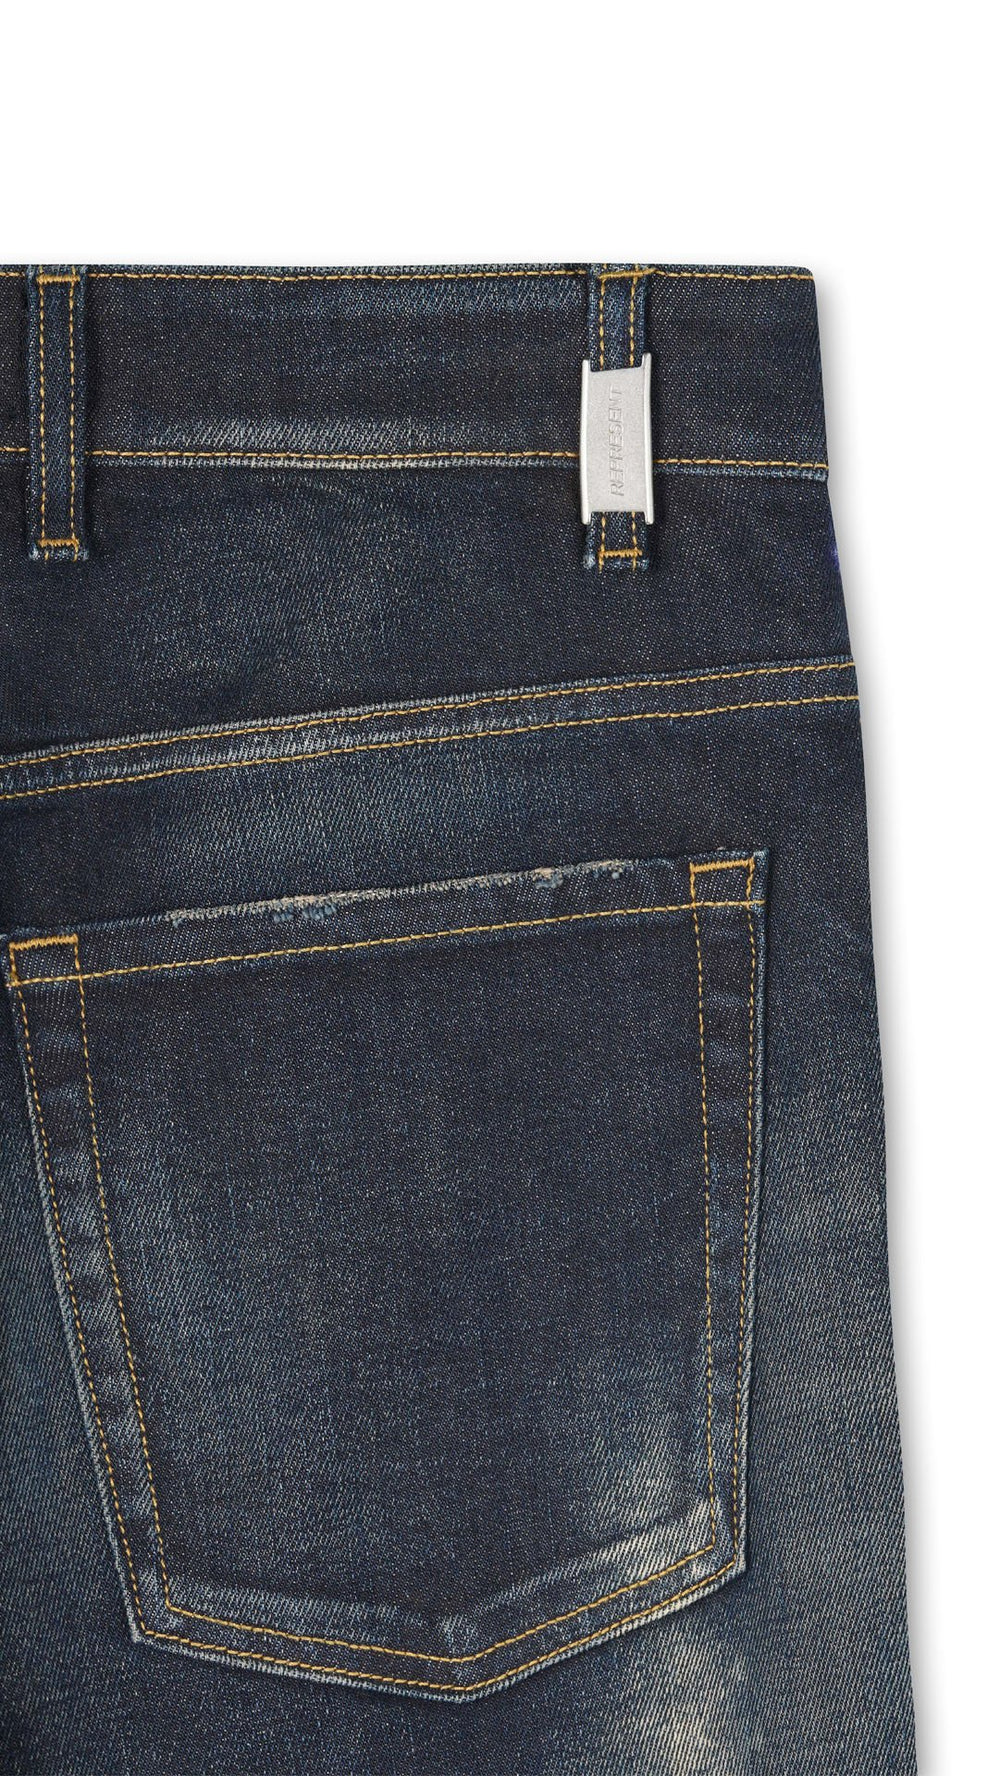 REPRESENT - DESTROYER DENIM CLASSIC BLUE